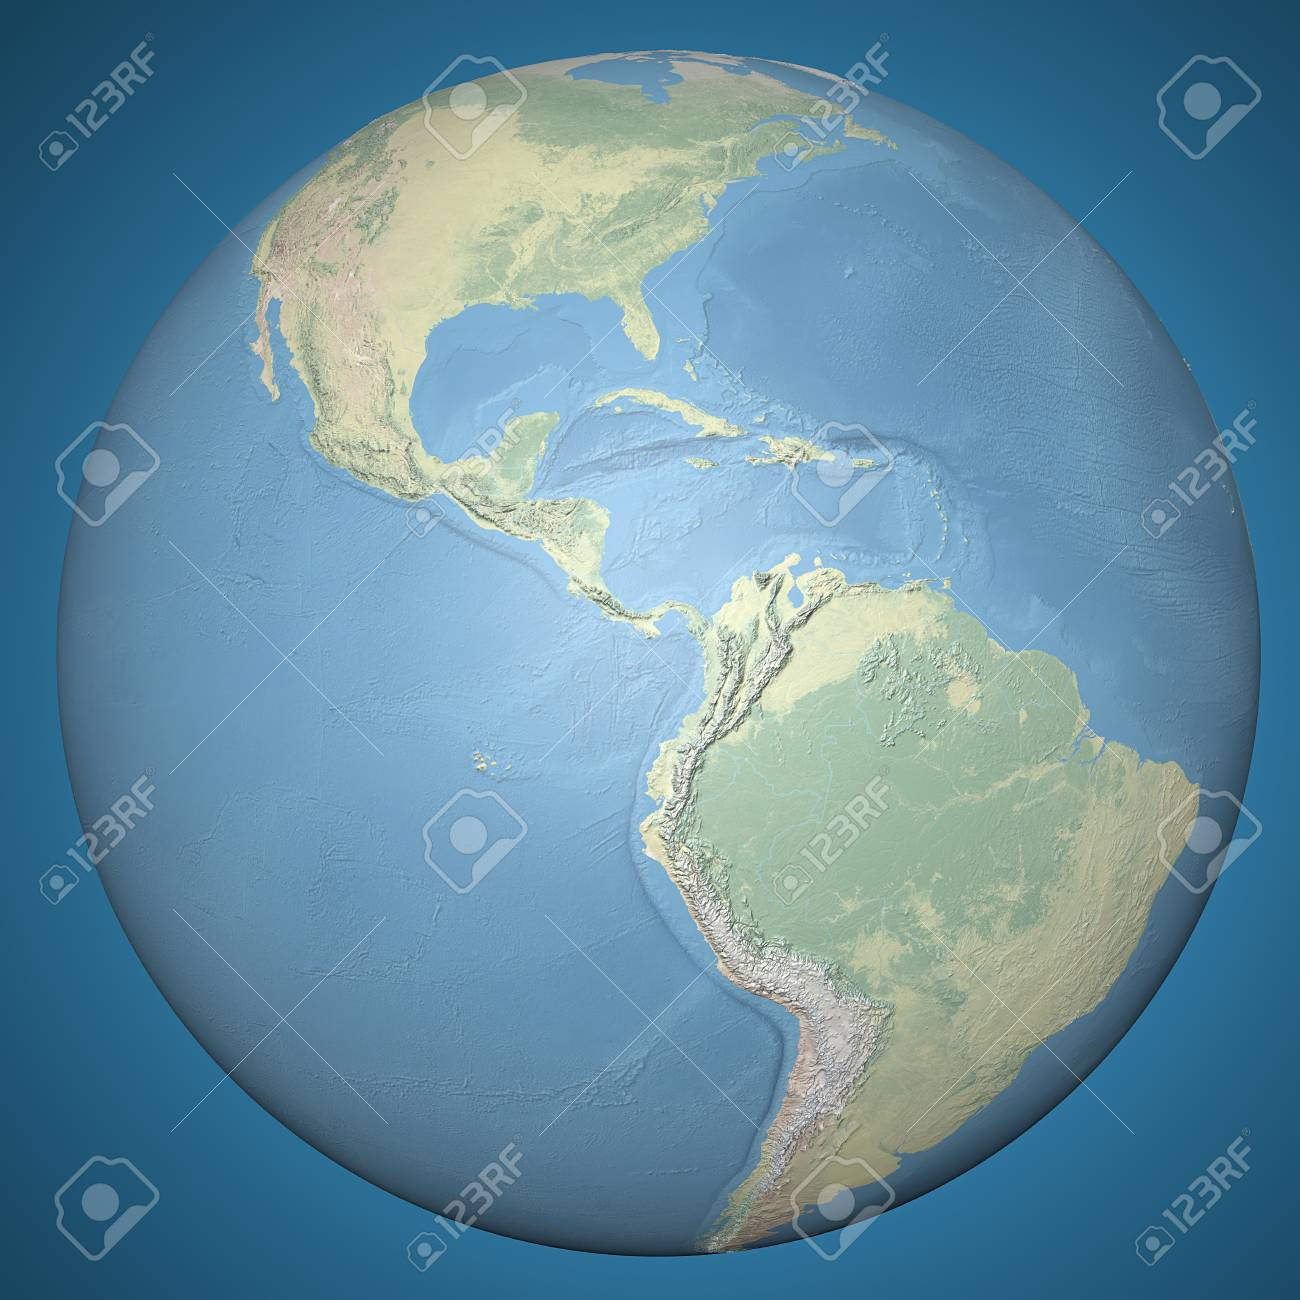 Relief Map Of The World.World Earth Globe Central America Physical Relief Map Stock Photo